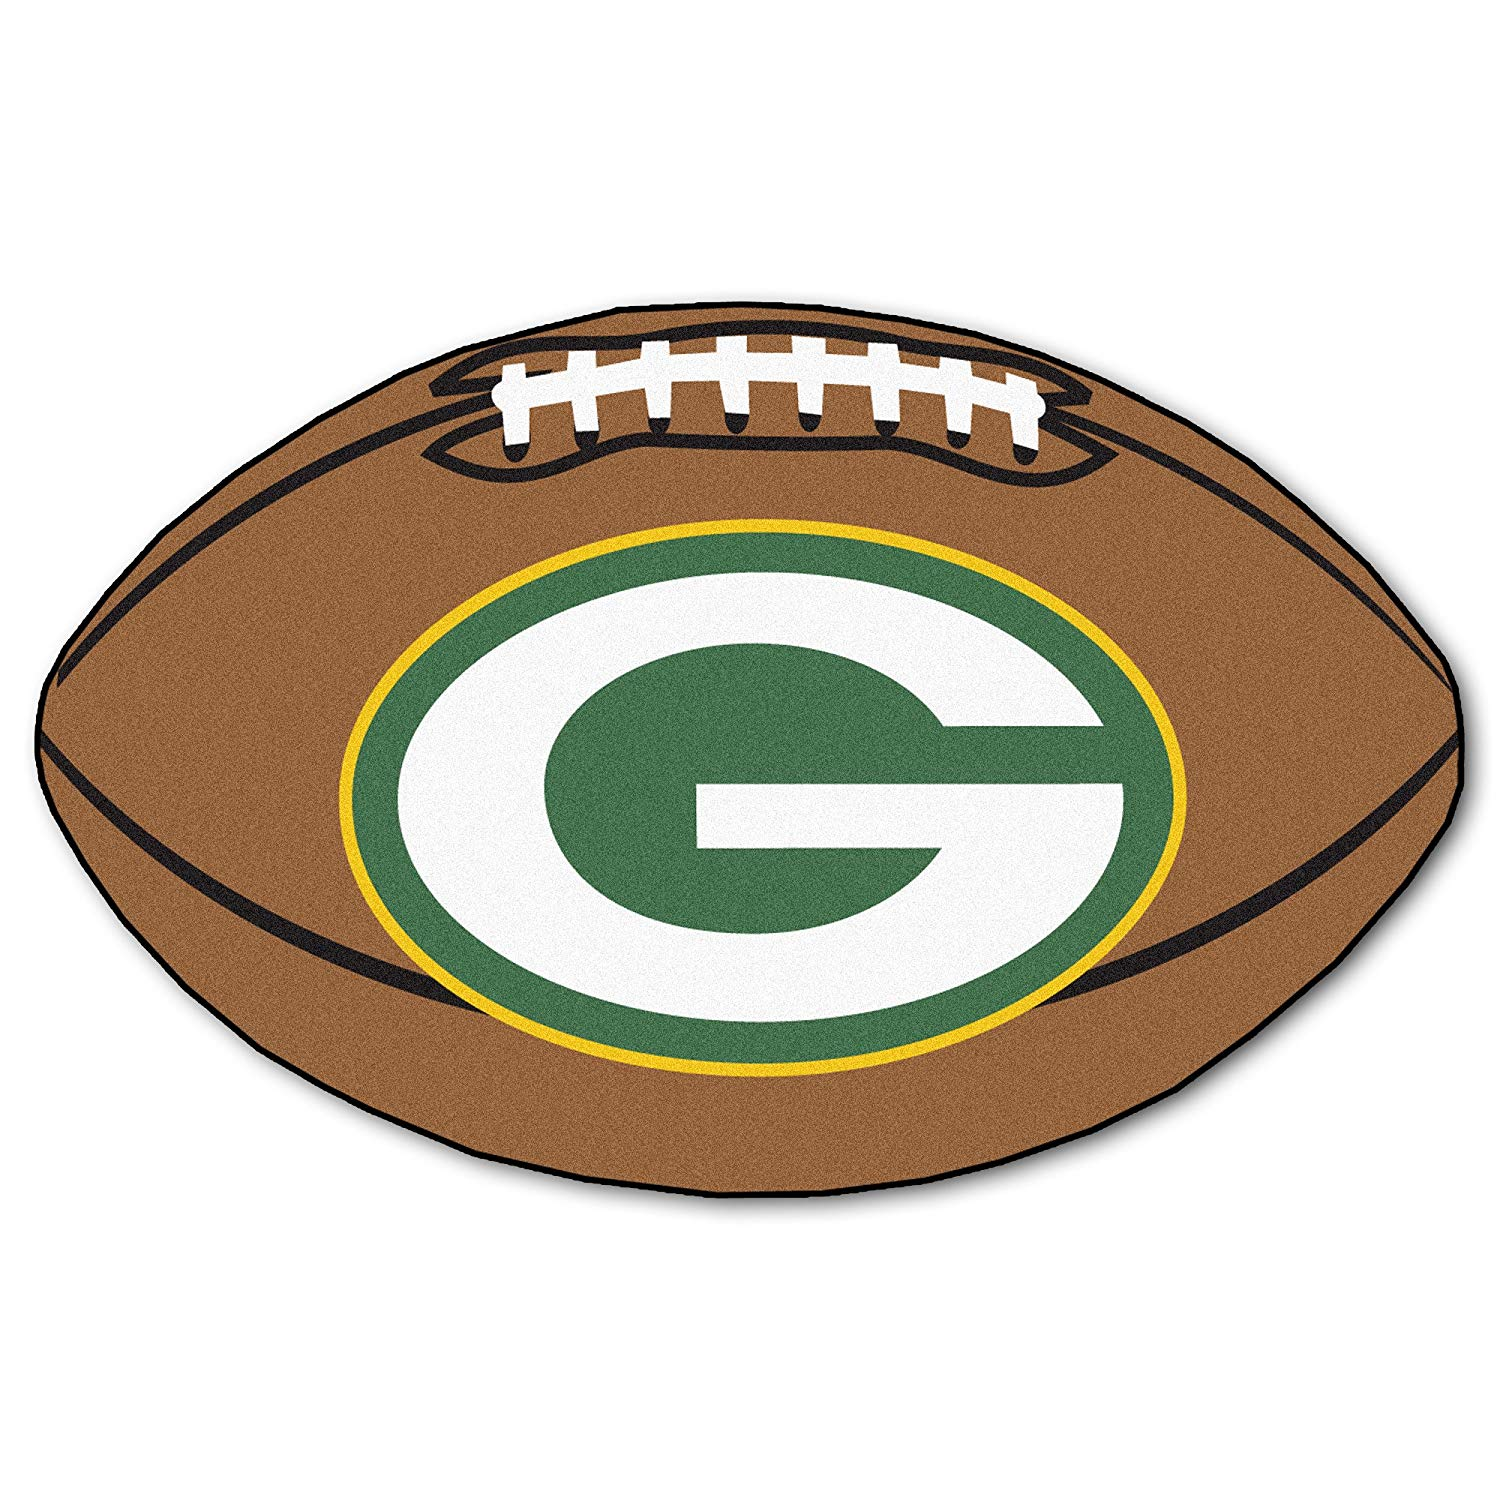 1500x1500 Fanmats Nfl Green Bay Packers Nylon Face Football Rug